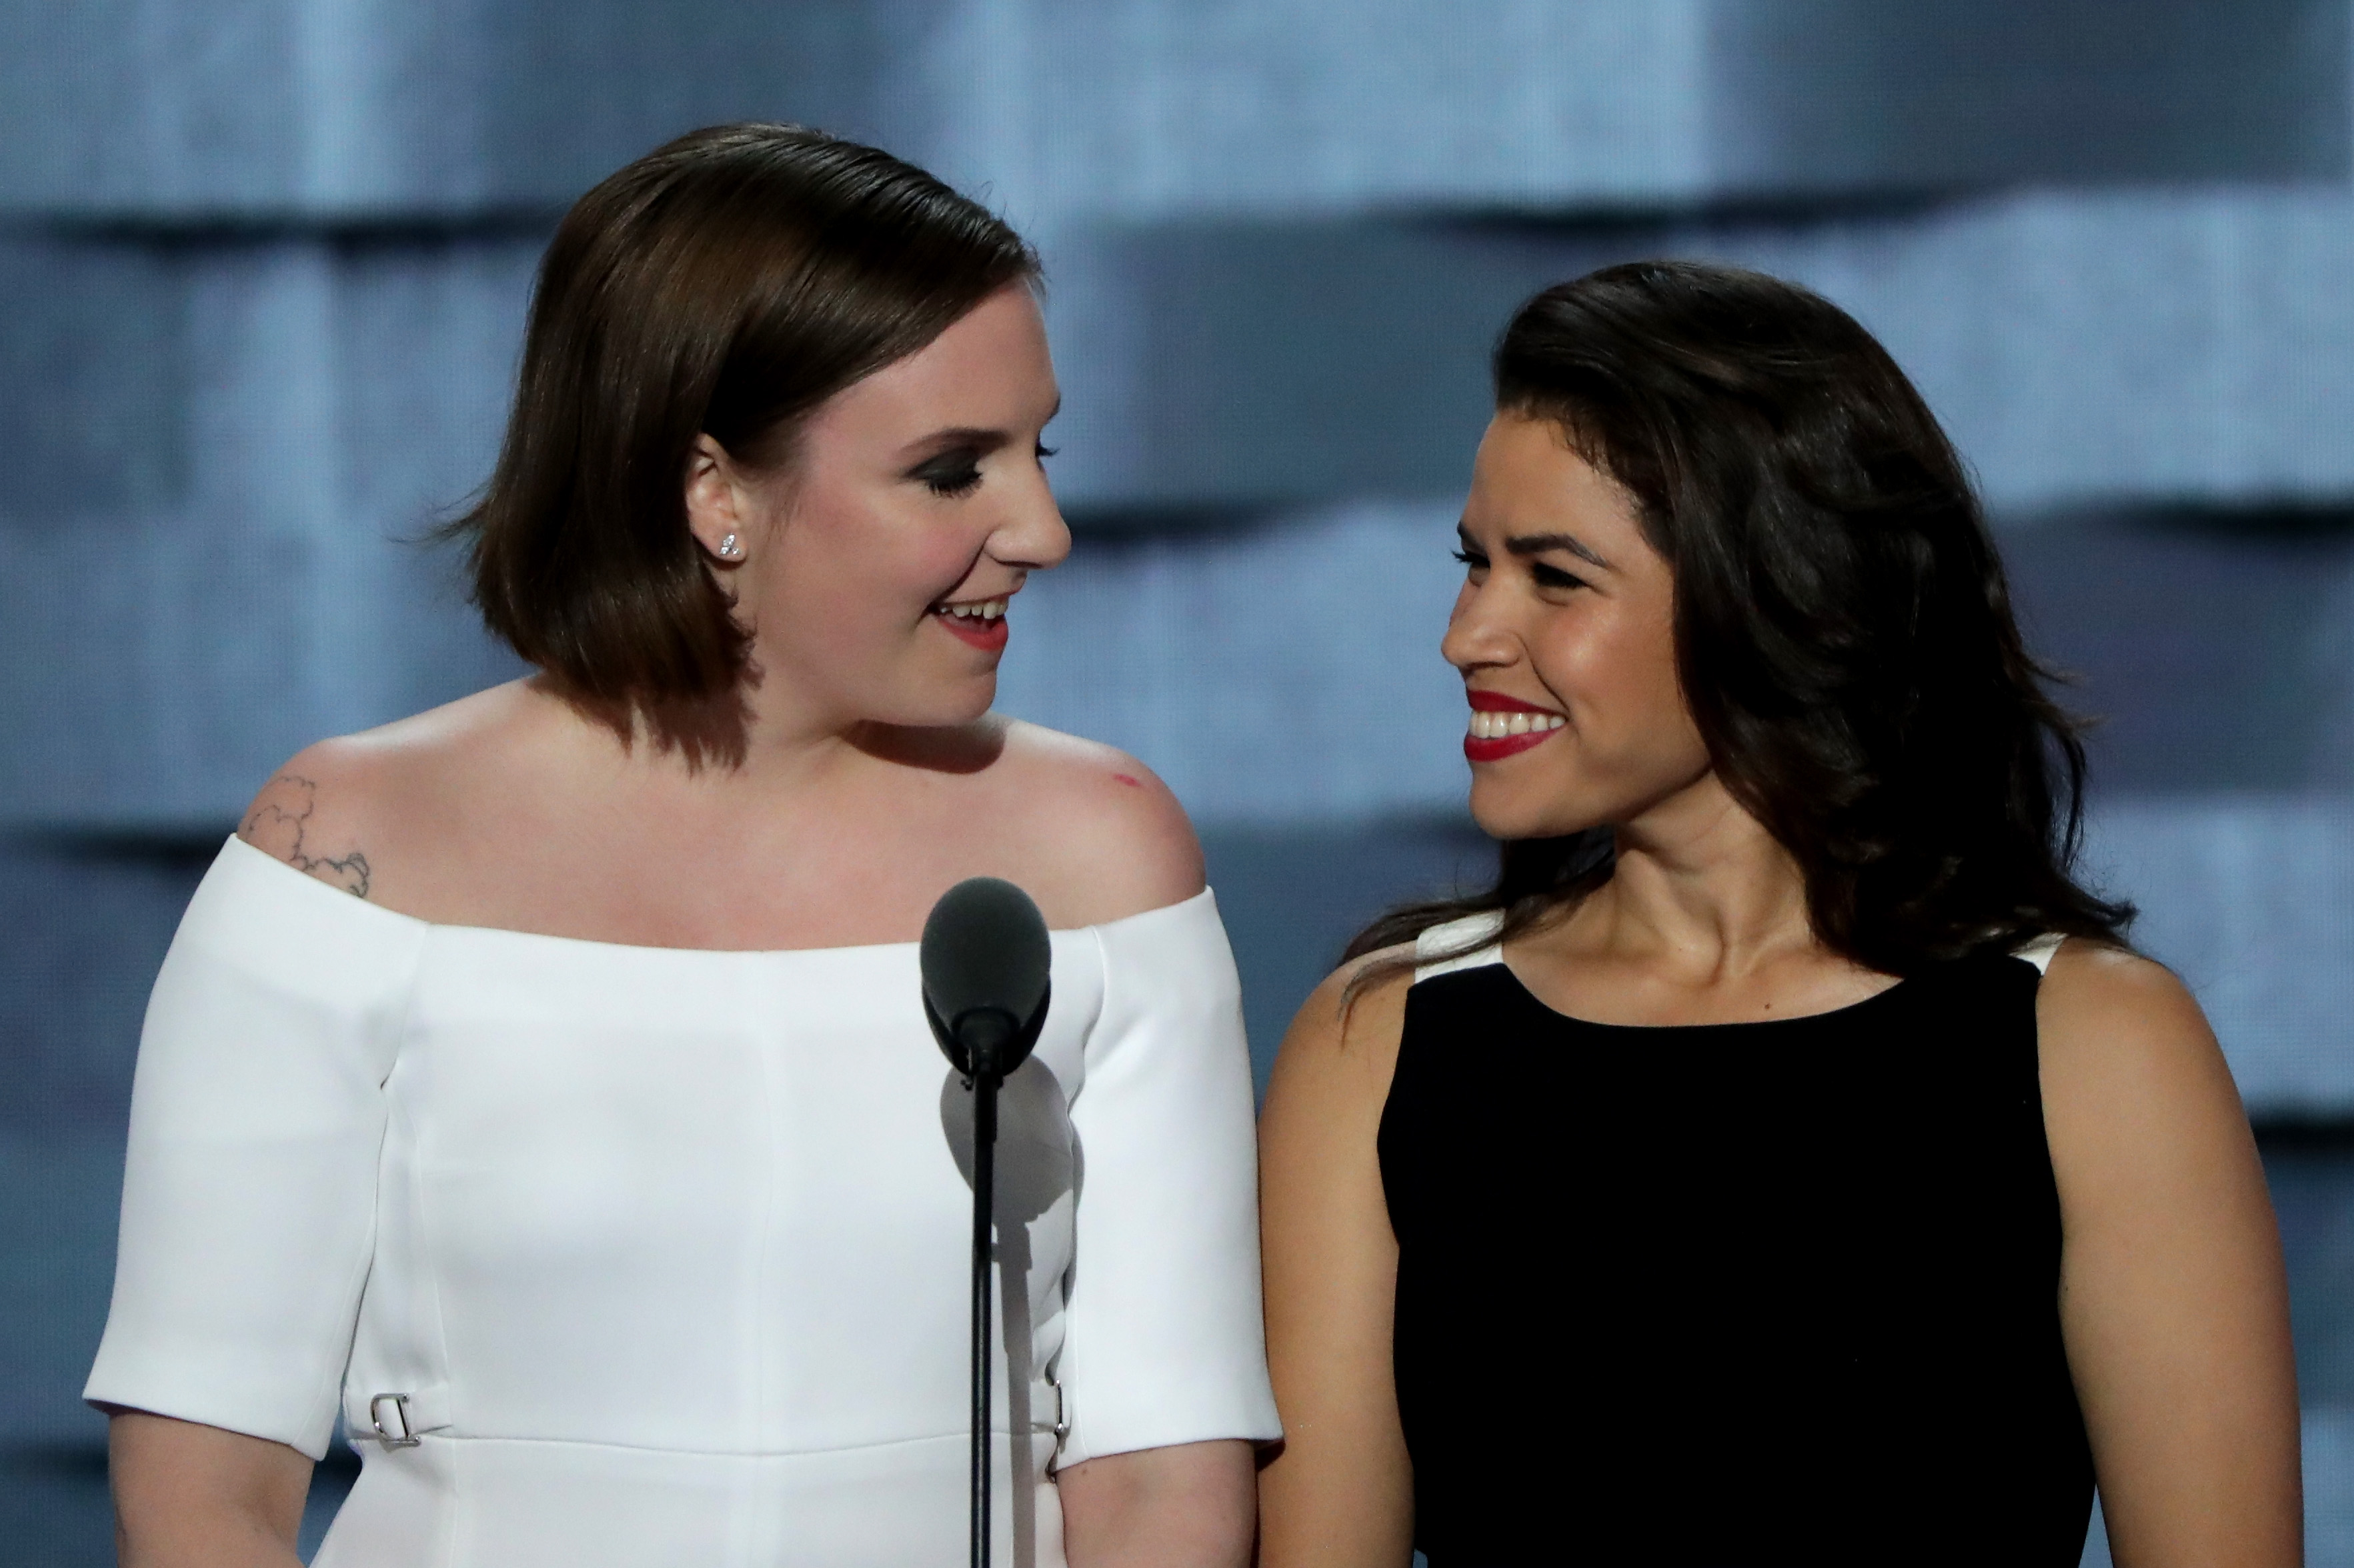 Actresses America Fererra (R) and Lena Dunham (L) arrive on stage to deliver remarks on the second day of the Democratic National Convention at the Wells Fargo Center, July 26, 2016 in Philadelphia, Pennsylvania.